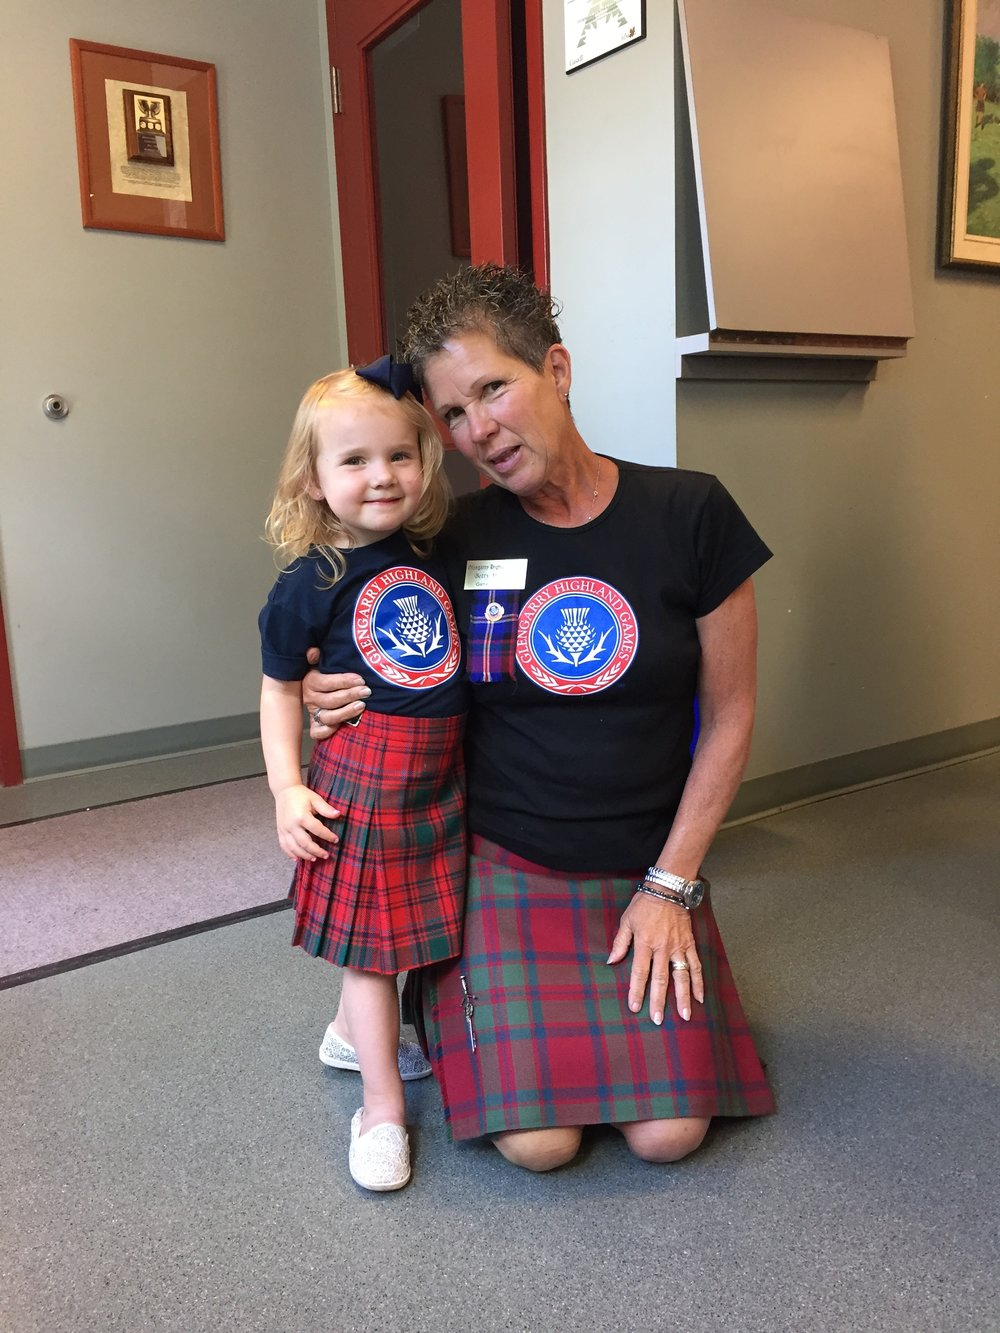 Angie Rae McIntosh for her photos - one of our Games Secretary with her granddaughter, and...